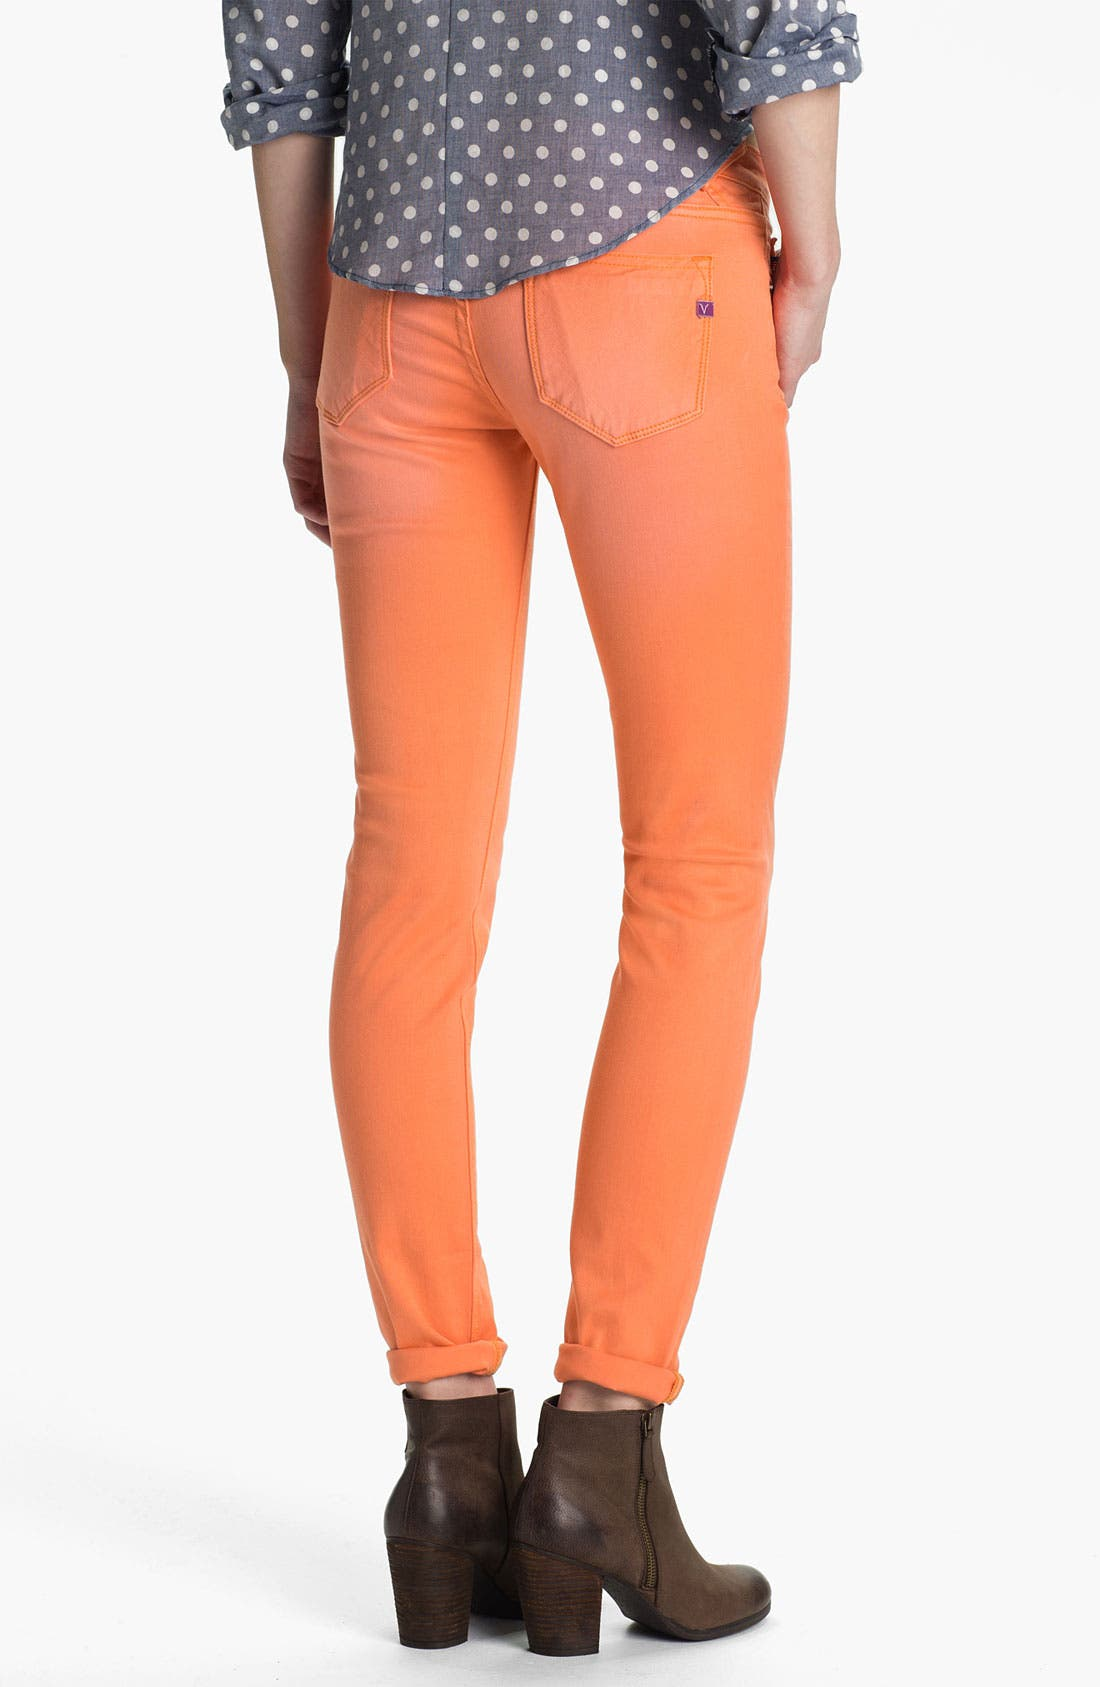 Alternate Image 1 Selected - Vigoss Skinny Jeans (Tangerine) (Juniors)